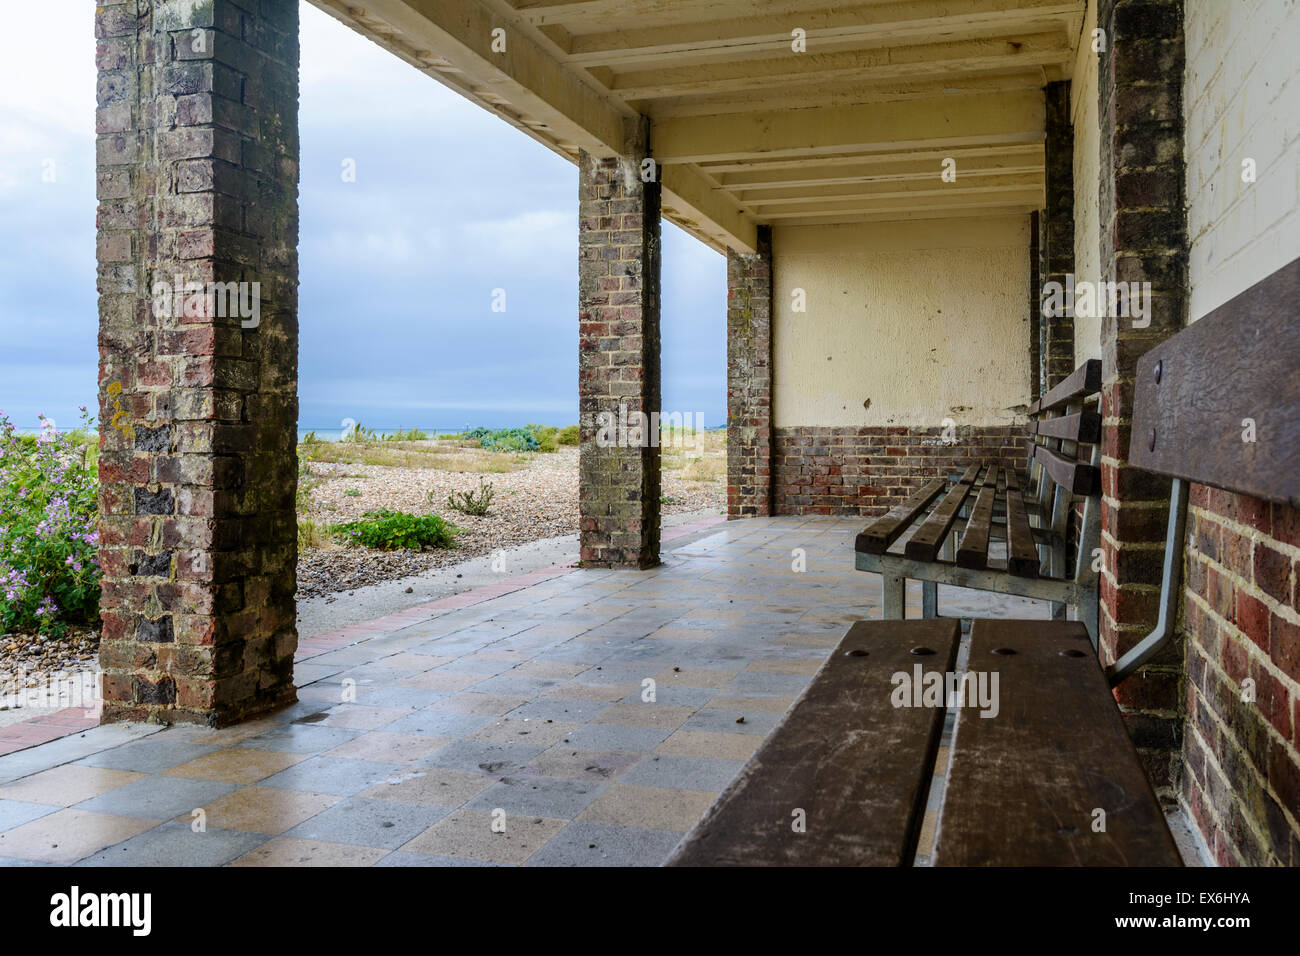 An old brick shelter on the seafront looking out to the beach and sea in Littlehampton, West Sussex, England, UK. - Stock Image